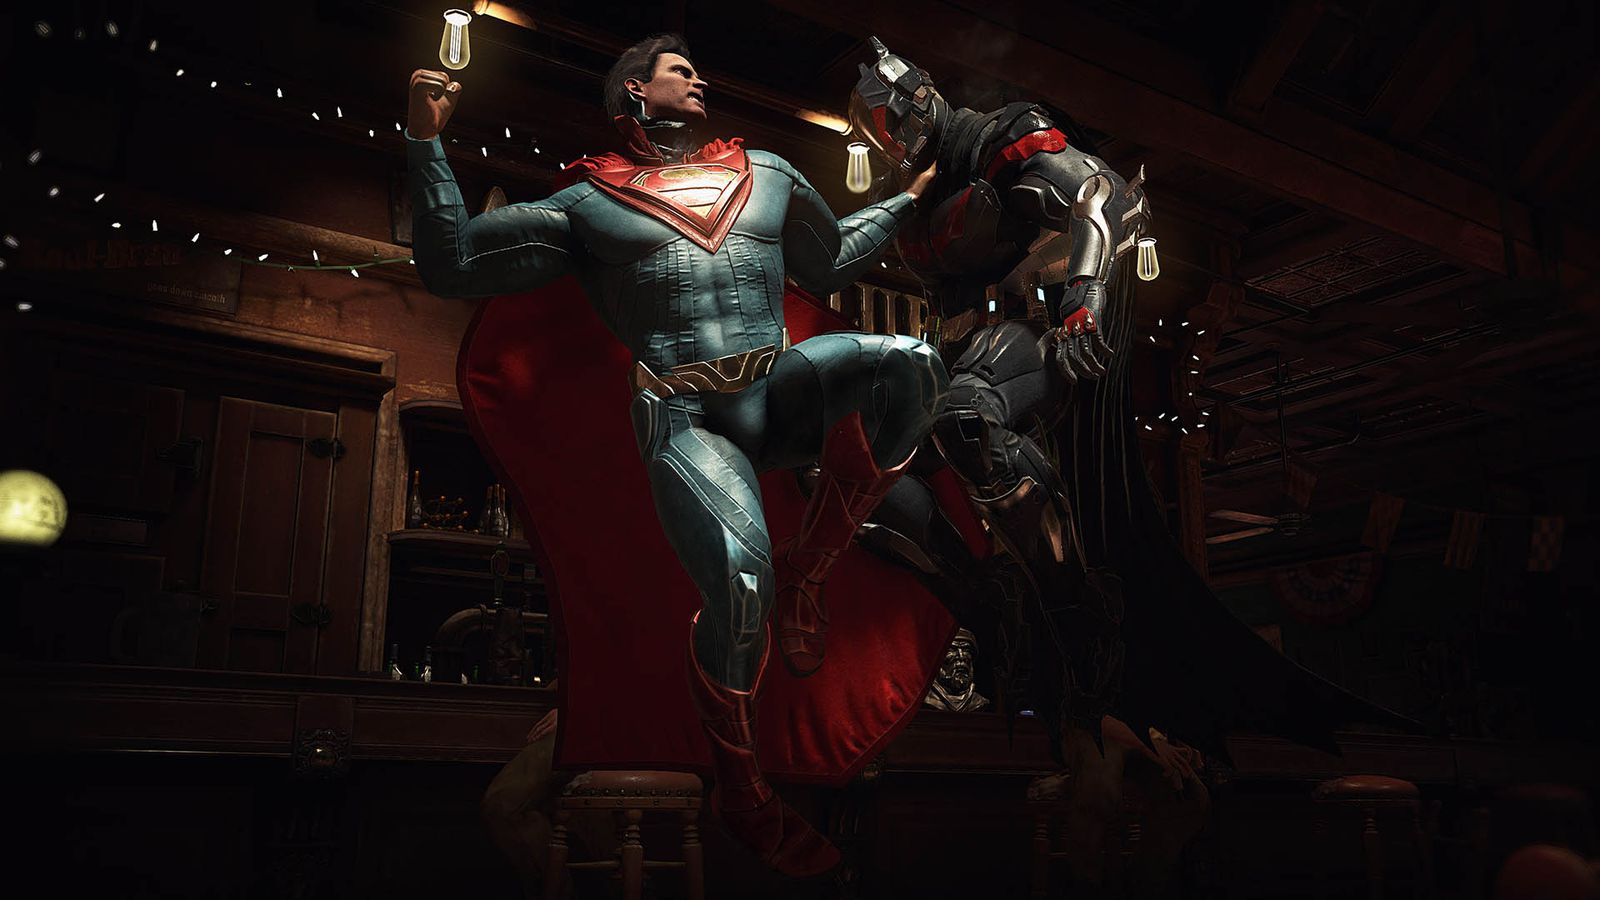 There's incredibly detailed fighting sequences in the game which will excite the comic book fan